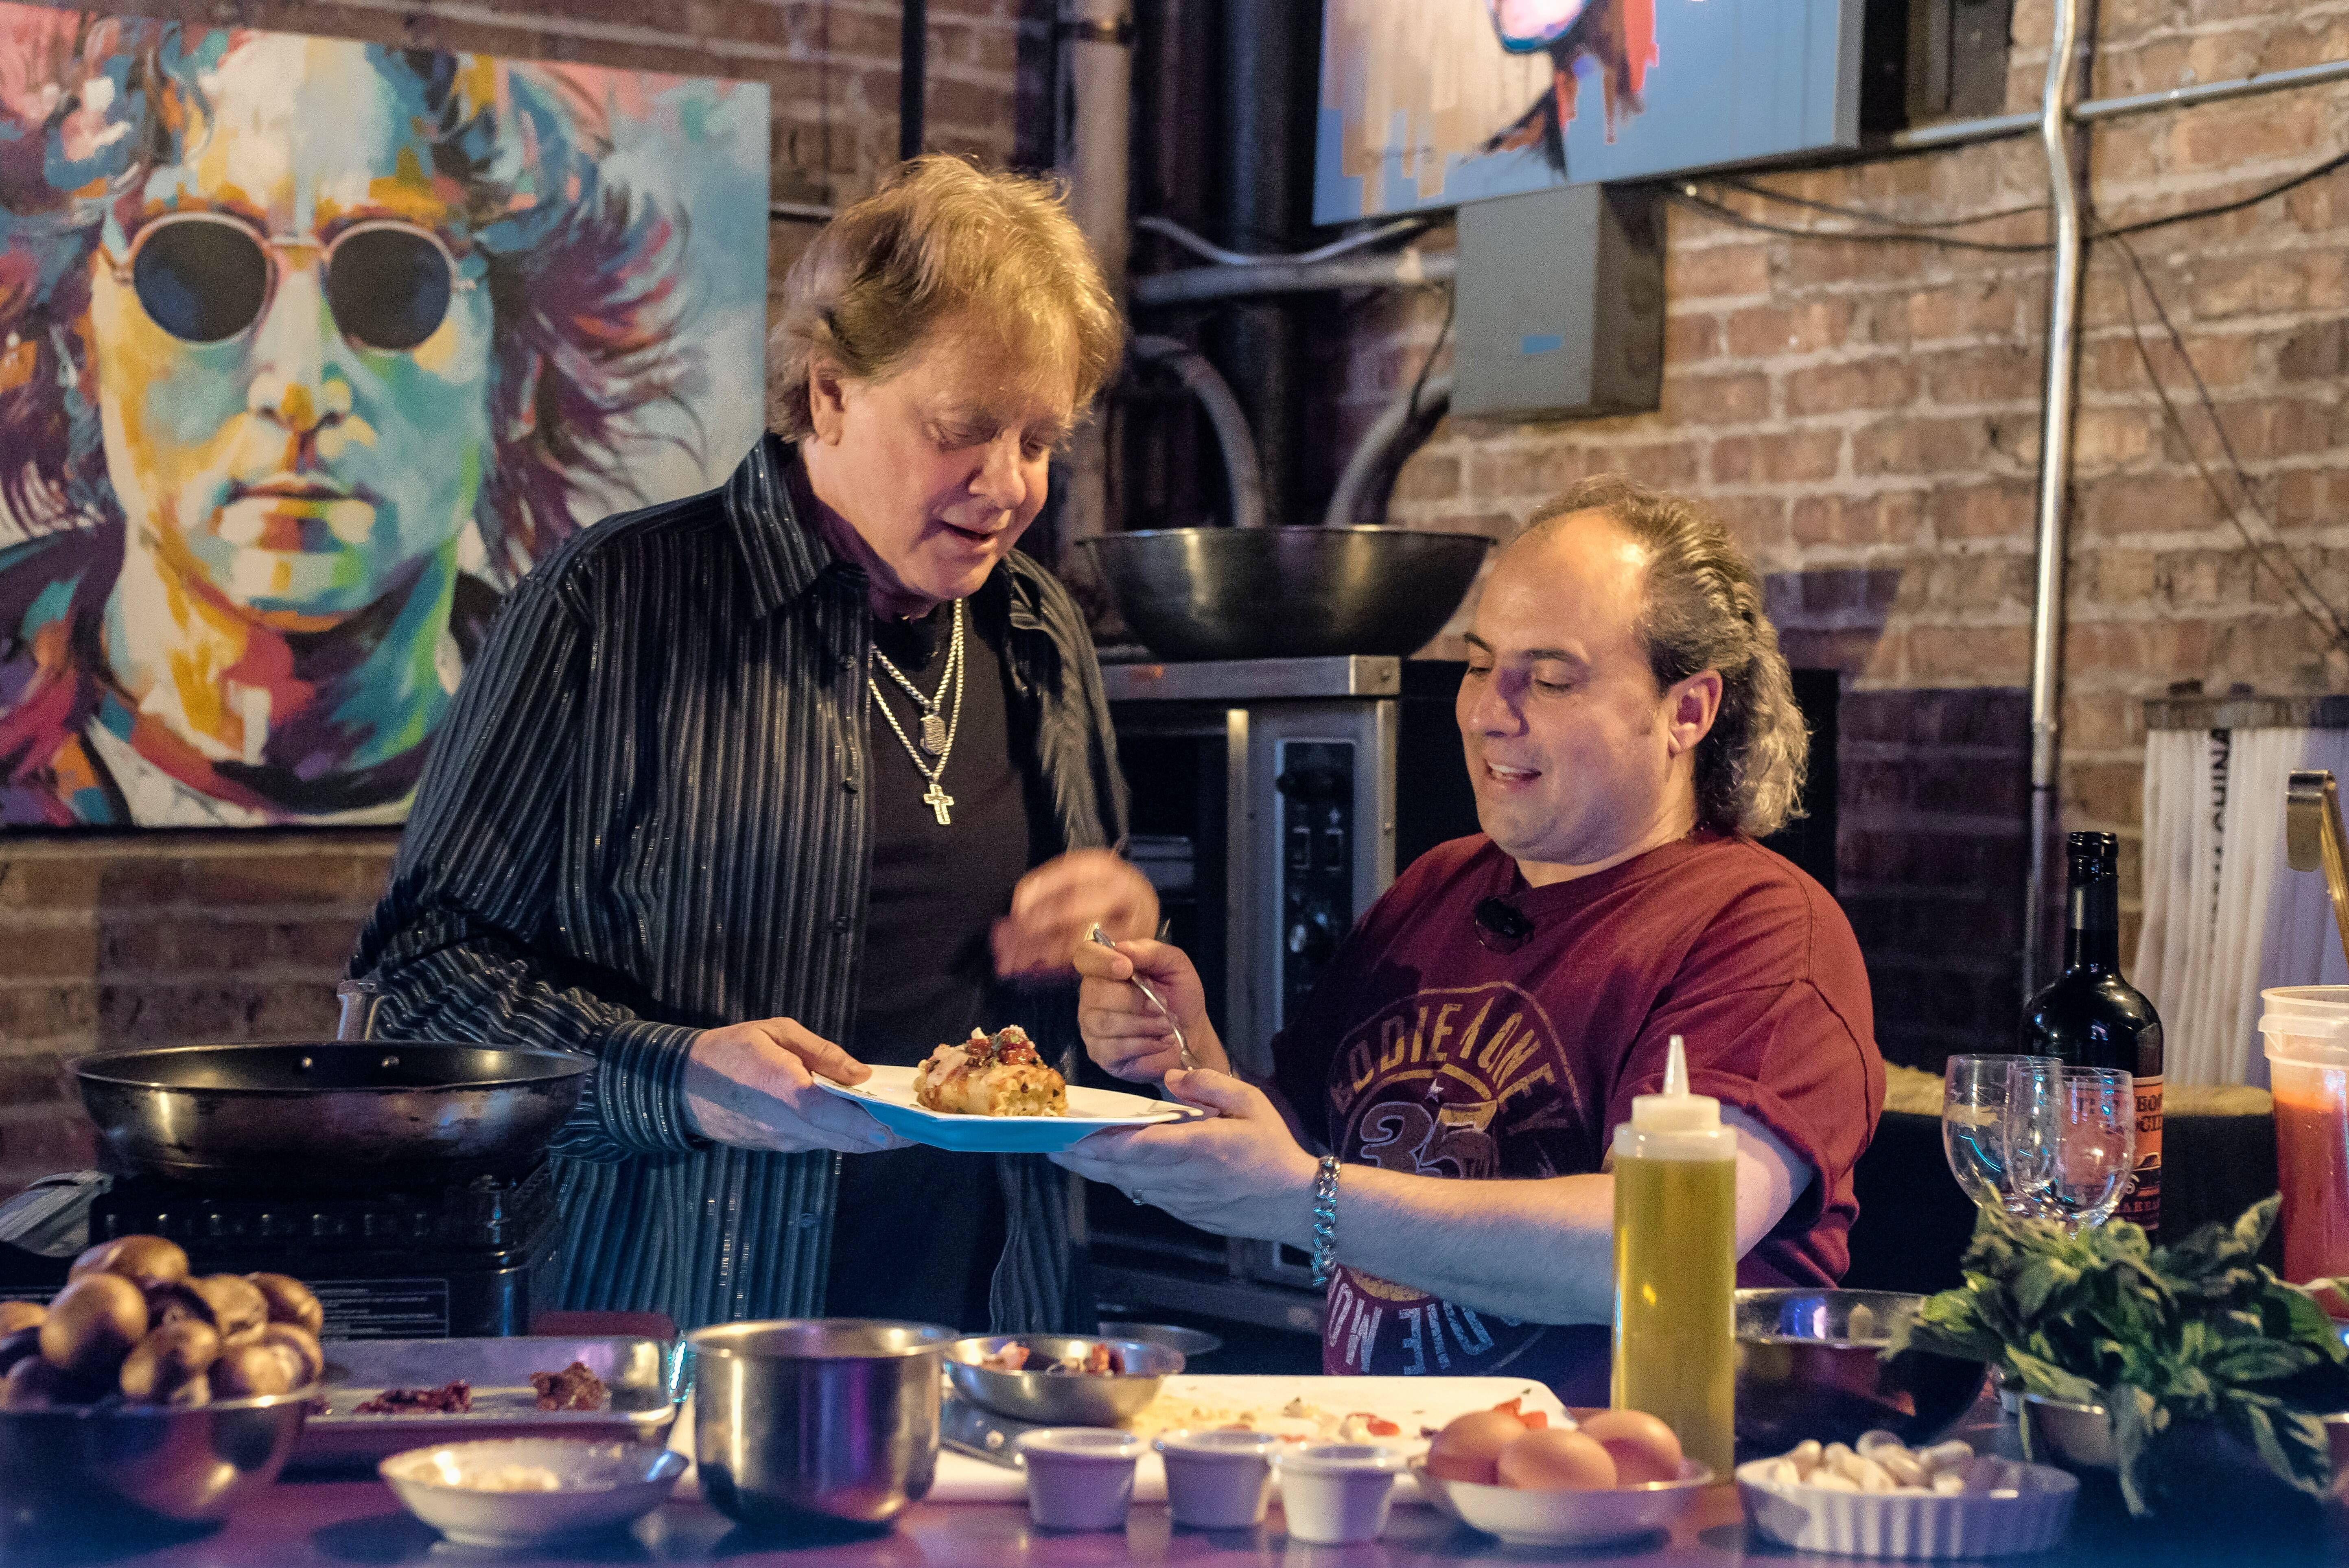 Ron Onesti, right, and singer Eddie Money cook up a vegetarian lasagna.